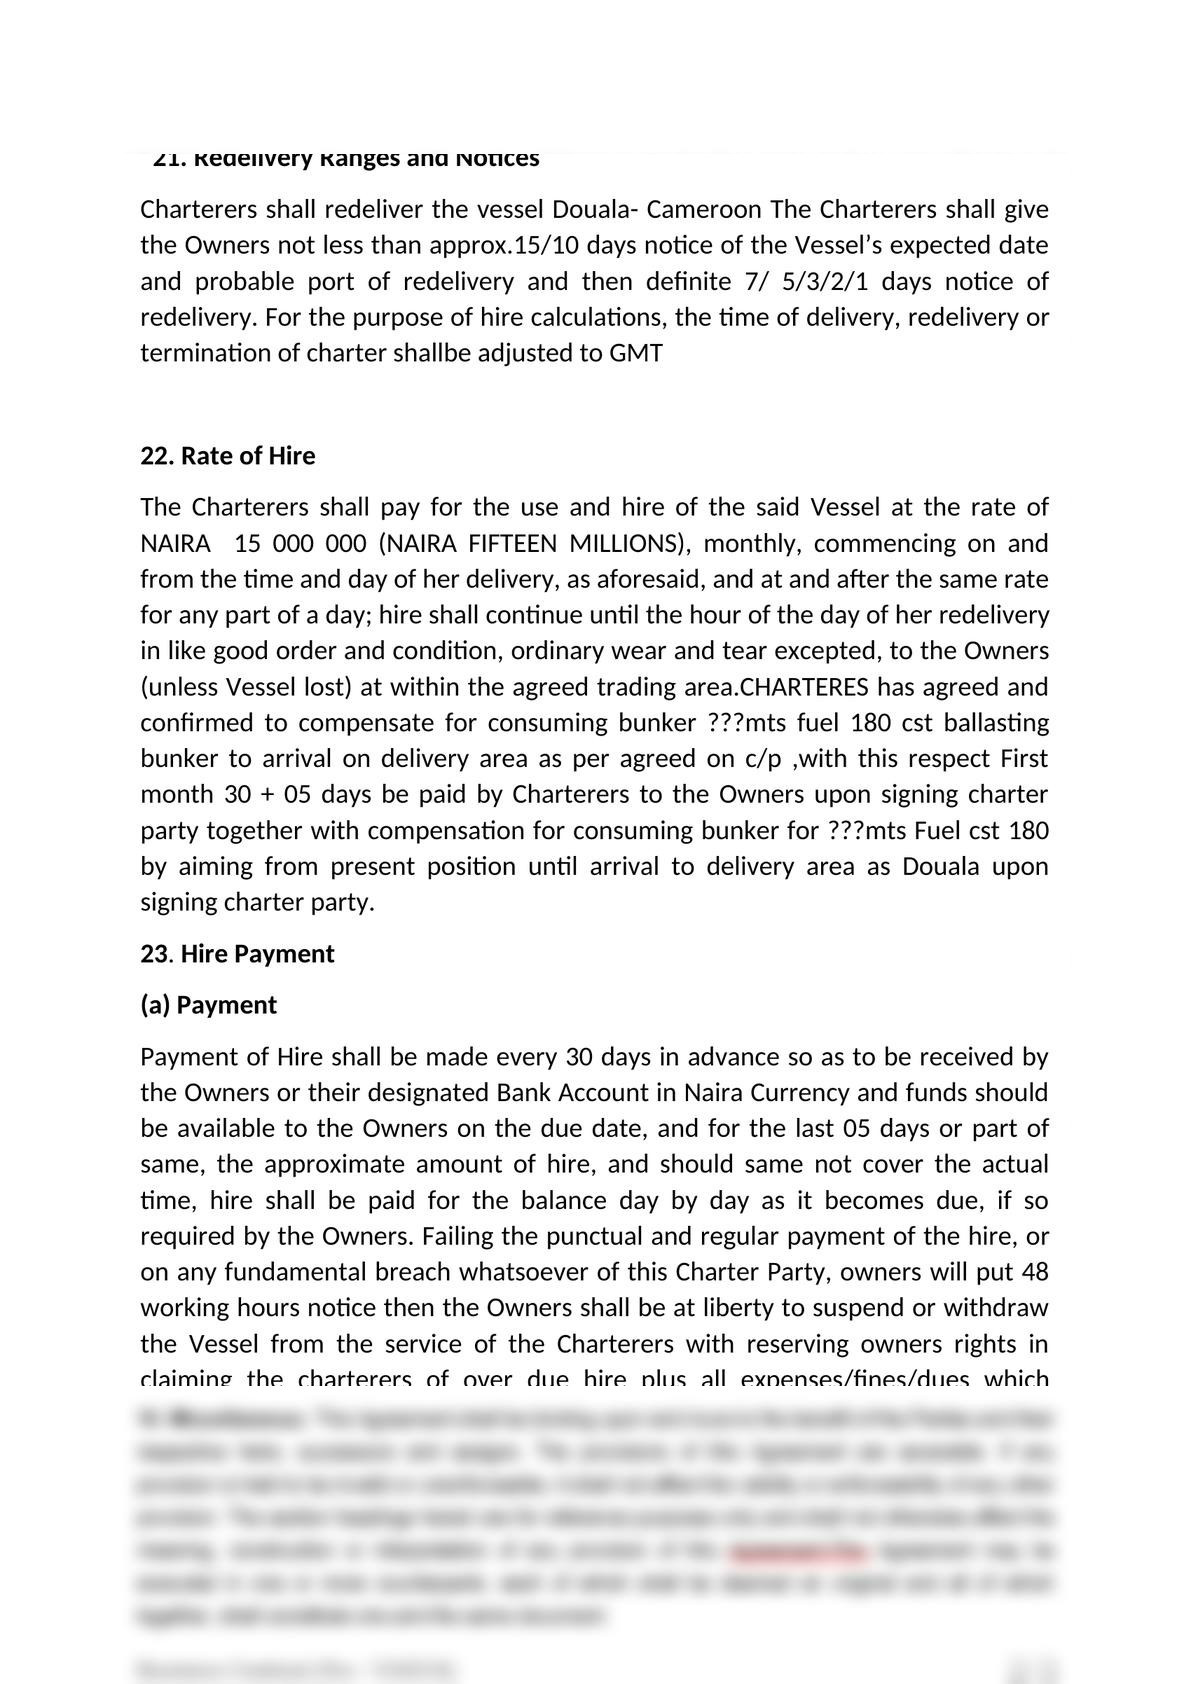 charter party agreement in cameroon-7